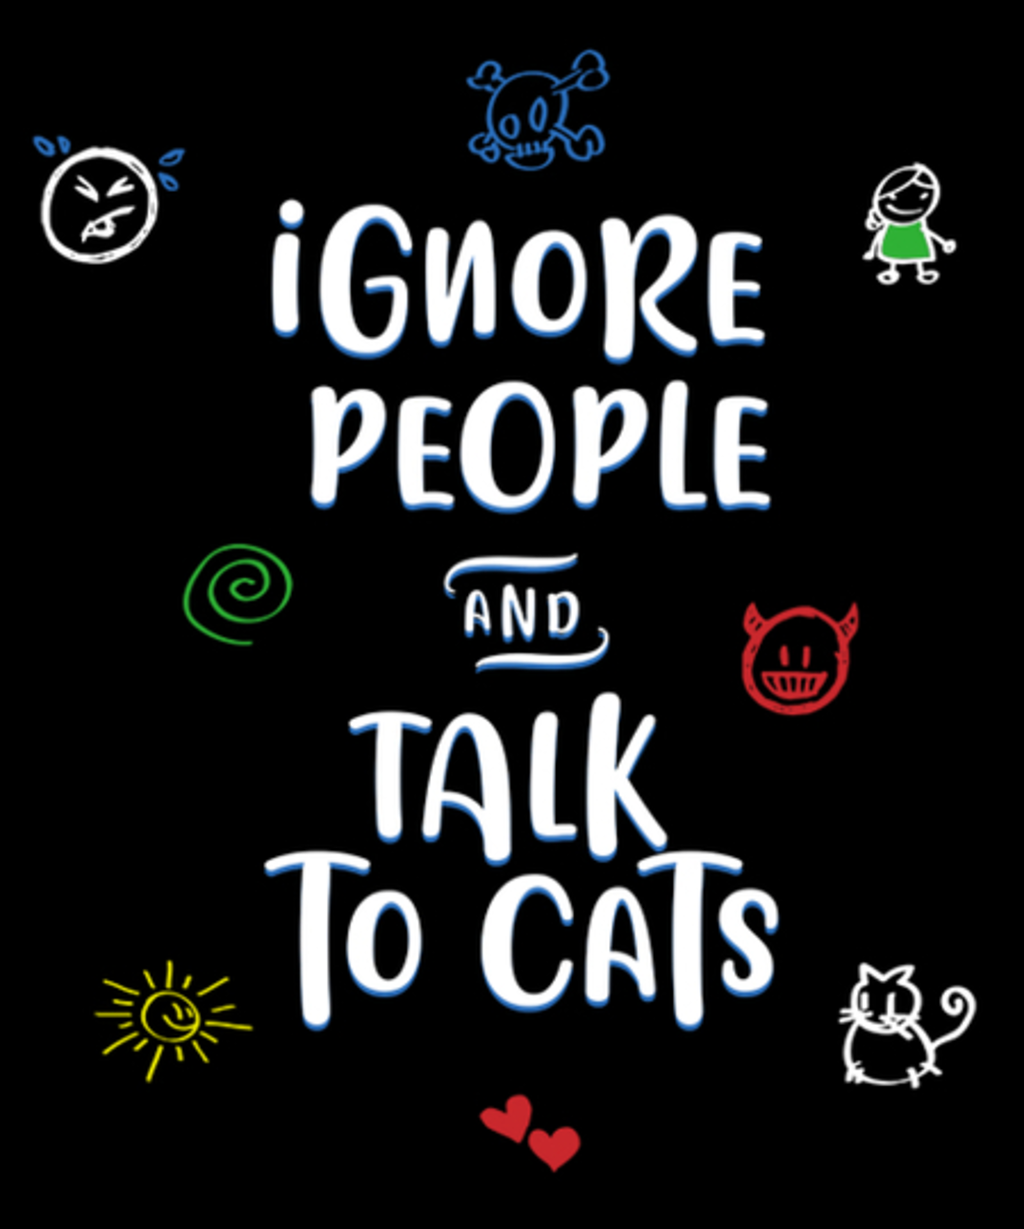 Qwertee: Ignore people and talk to cats